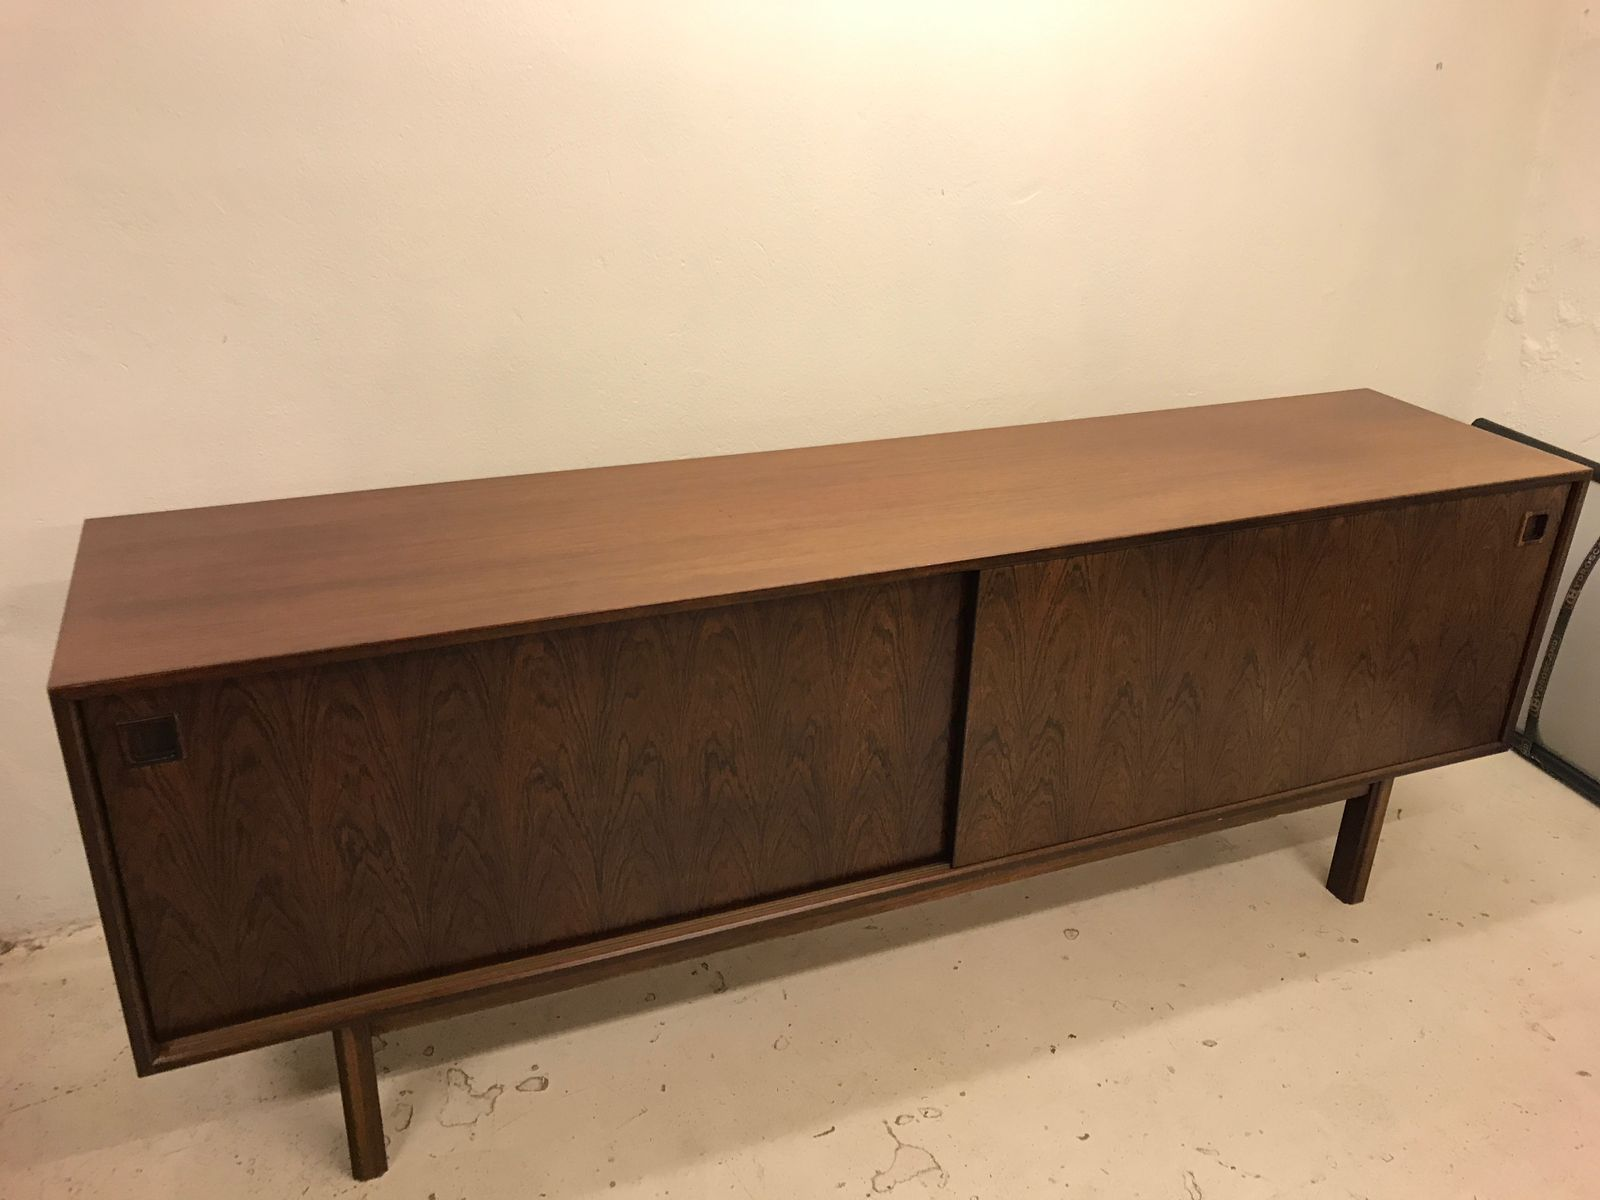 john tables sideboard table rare set listings side nesting furniture teak kandell and swedish low early